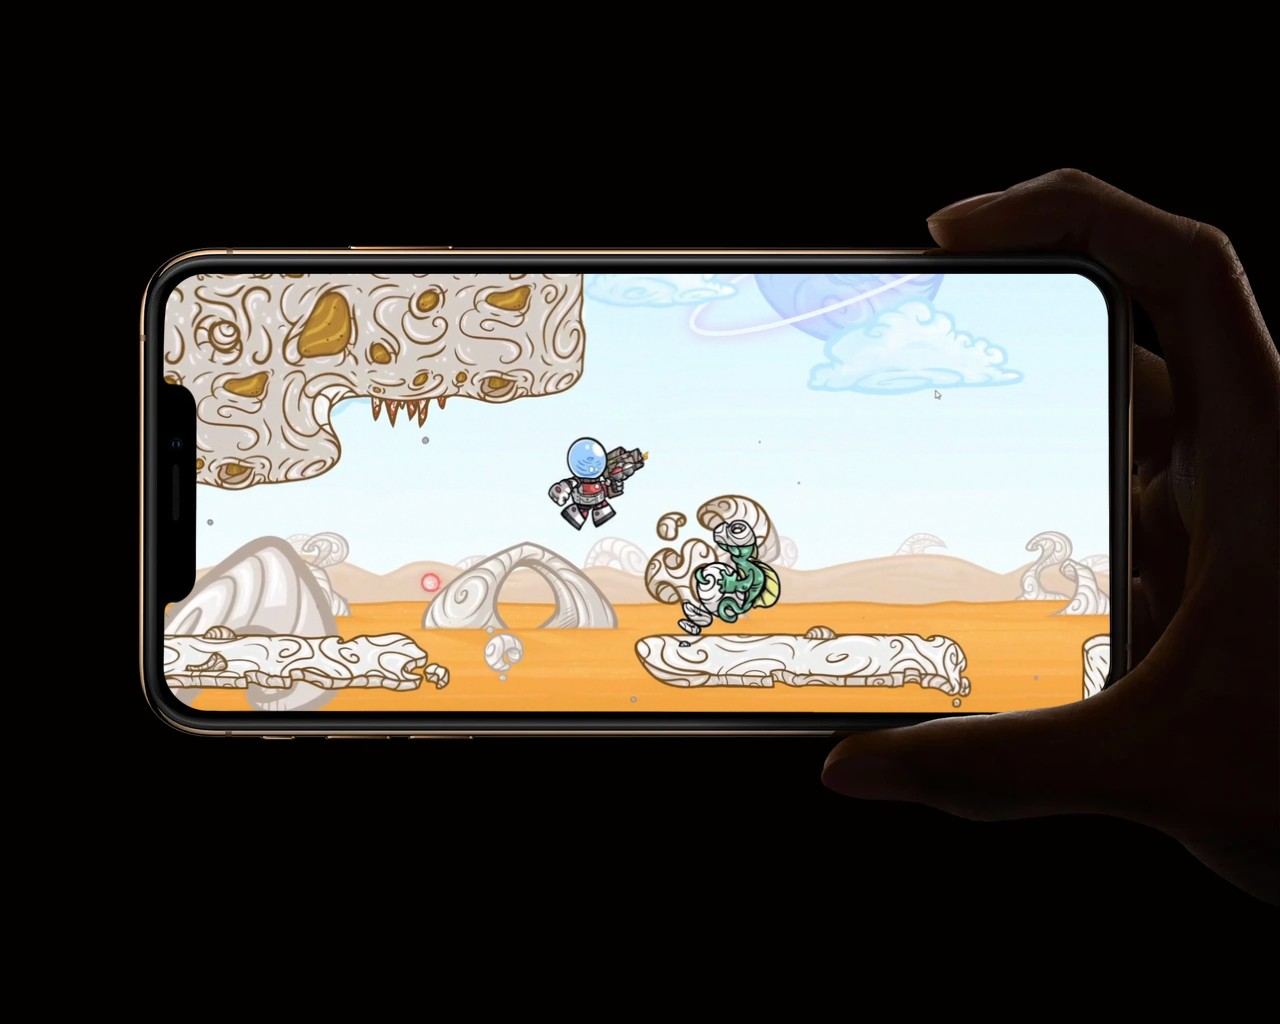 Apple Arcade Adds Five New Games to Its 'All You Can Play' Lineup